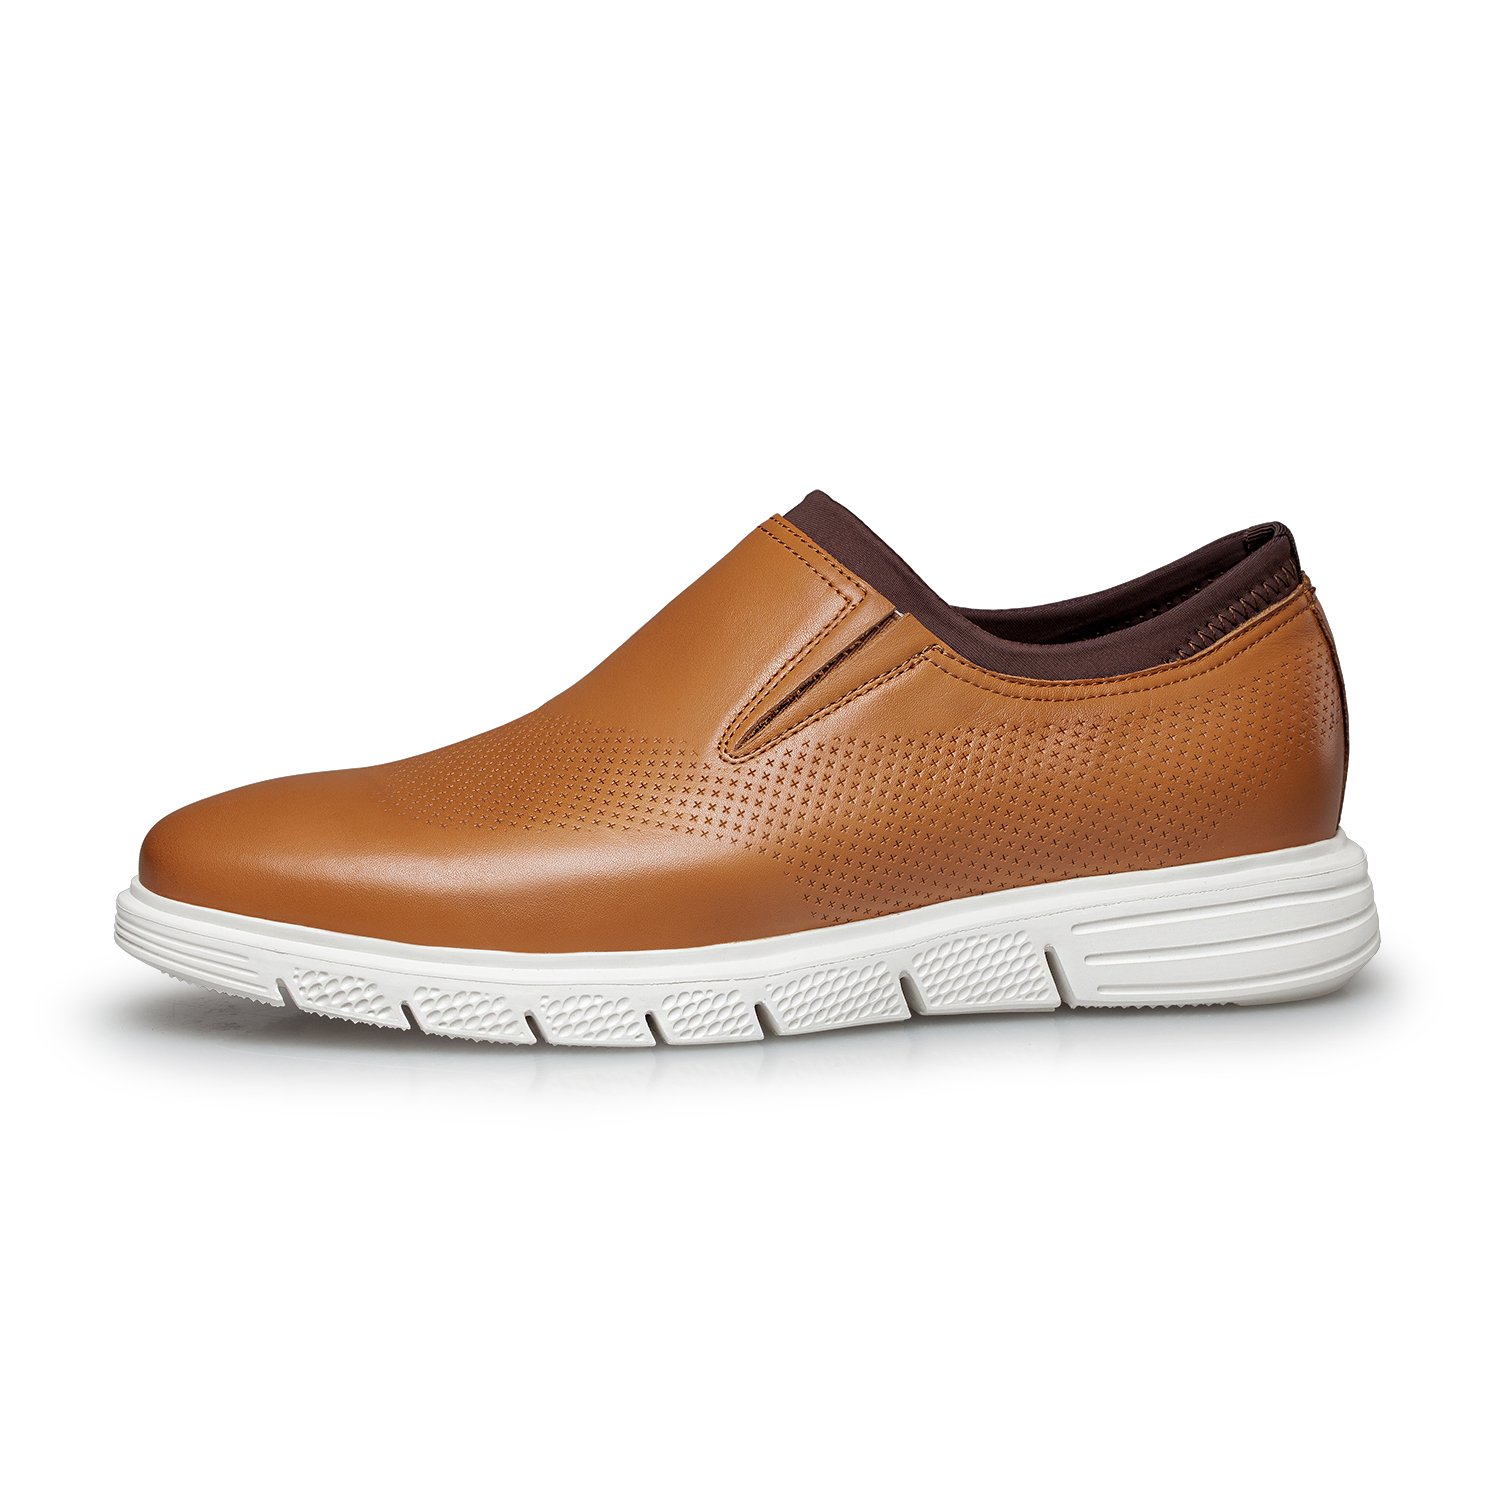 ZRO Mens Slip-on Fashion Sneaker Casual Loafer Breathable